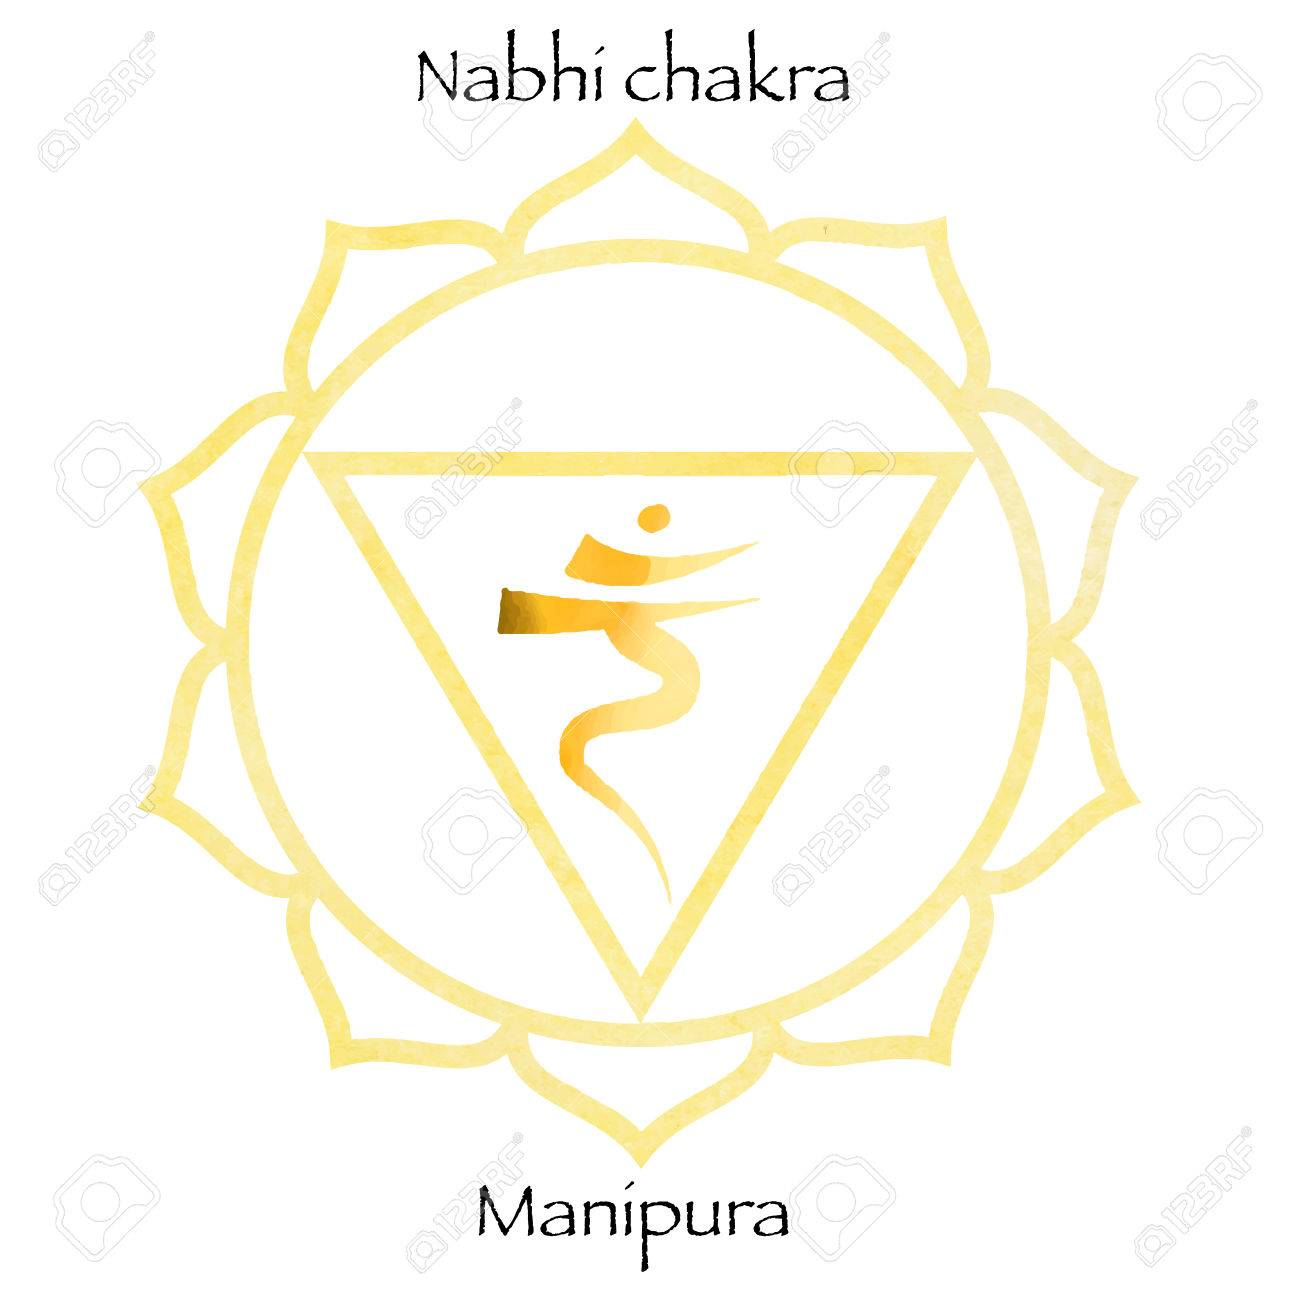 what is the third chakra